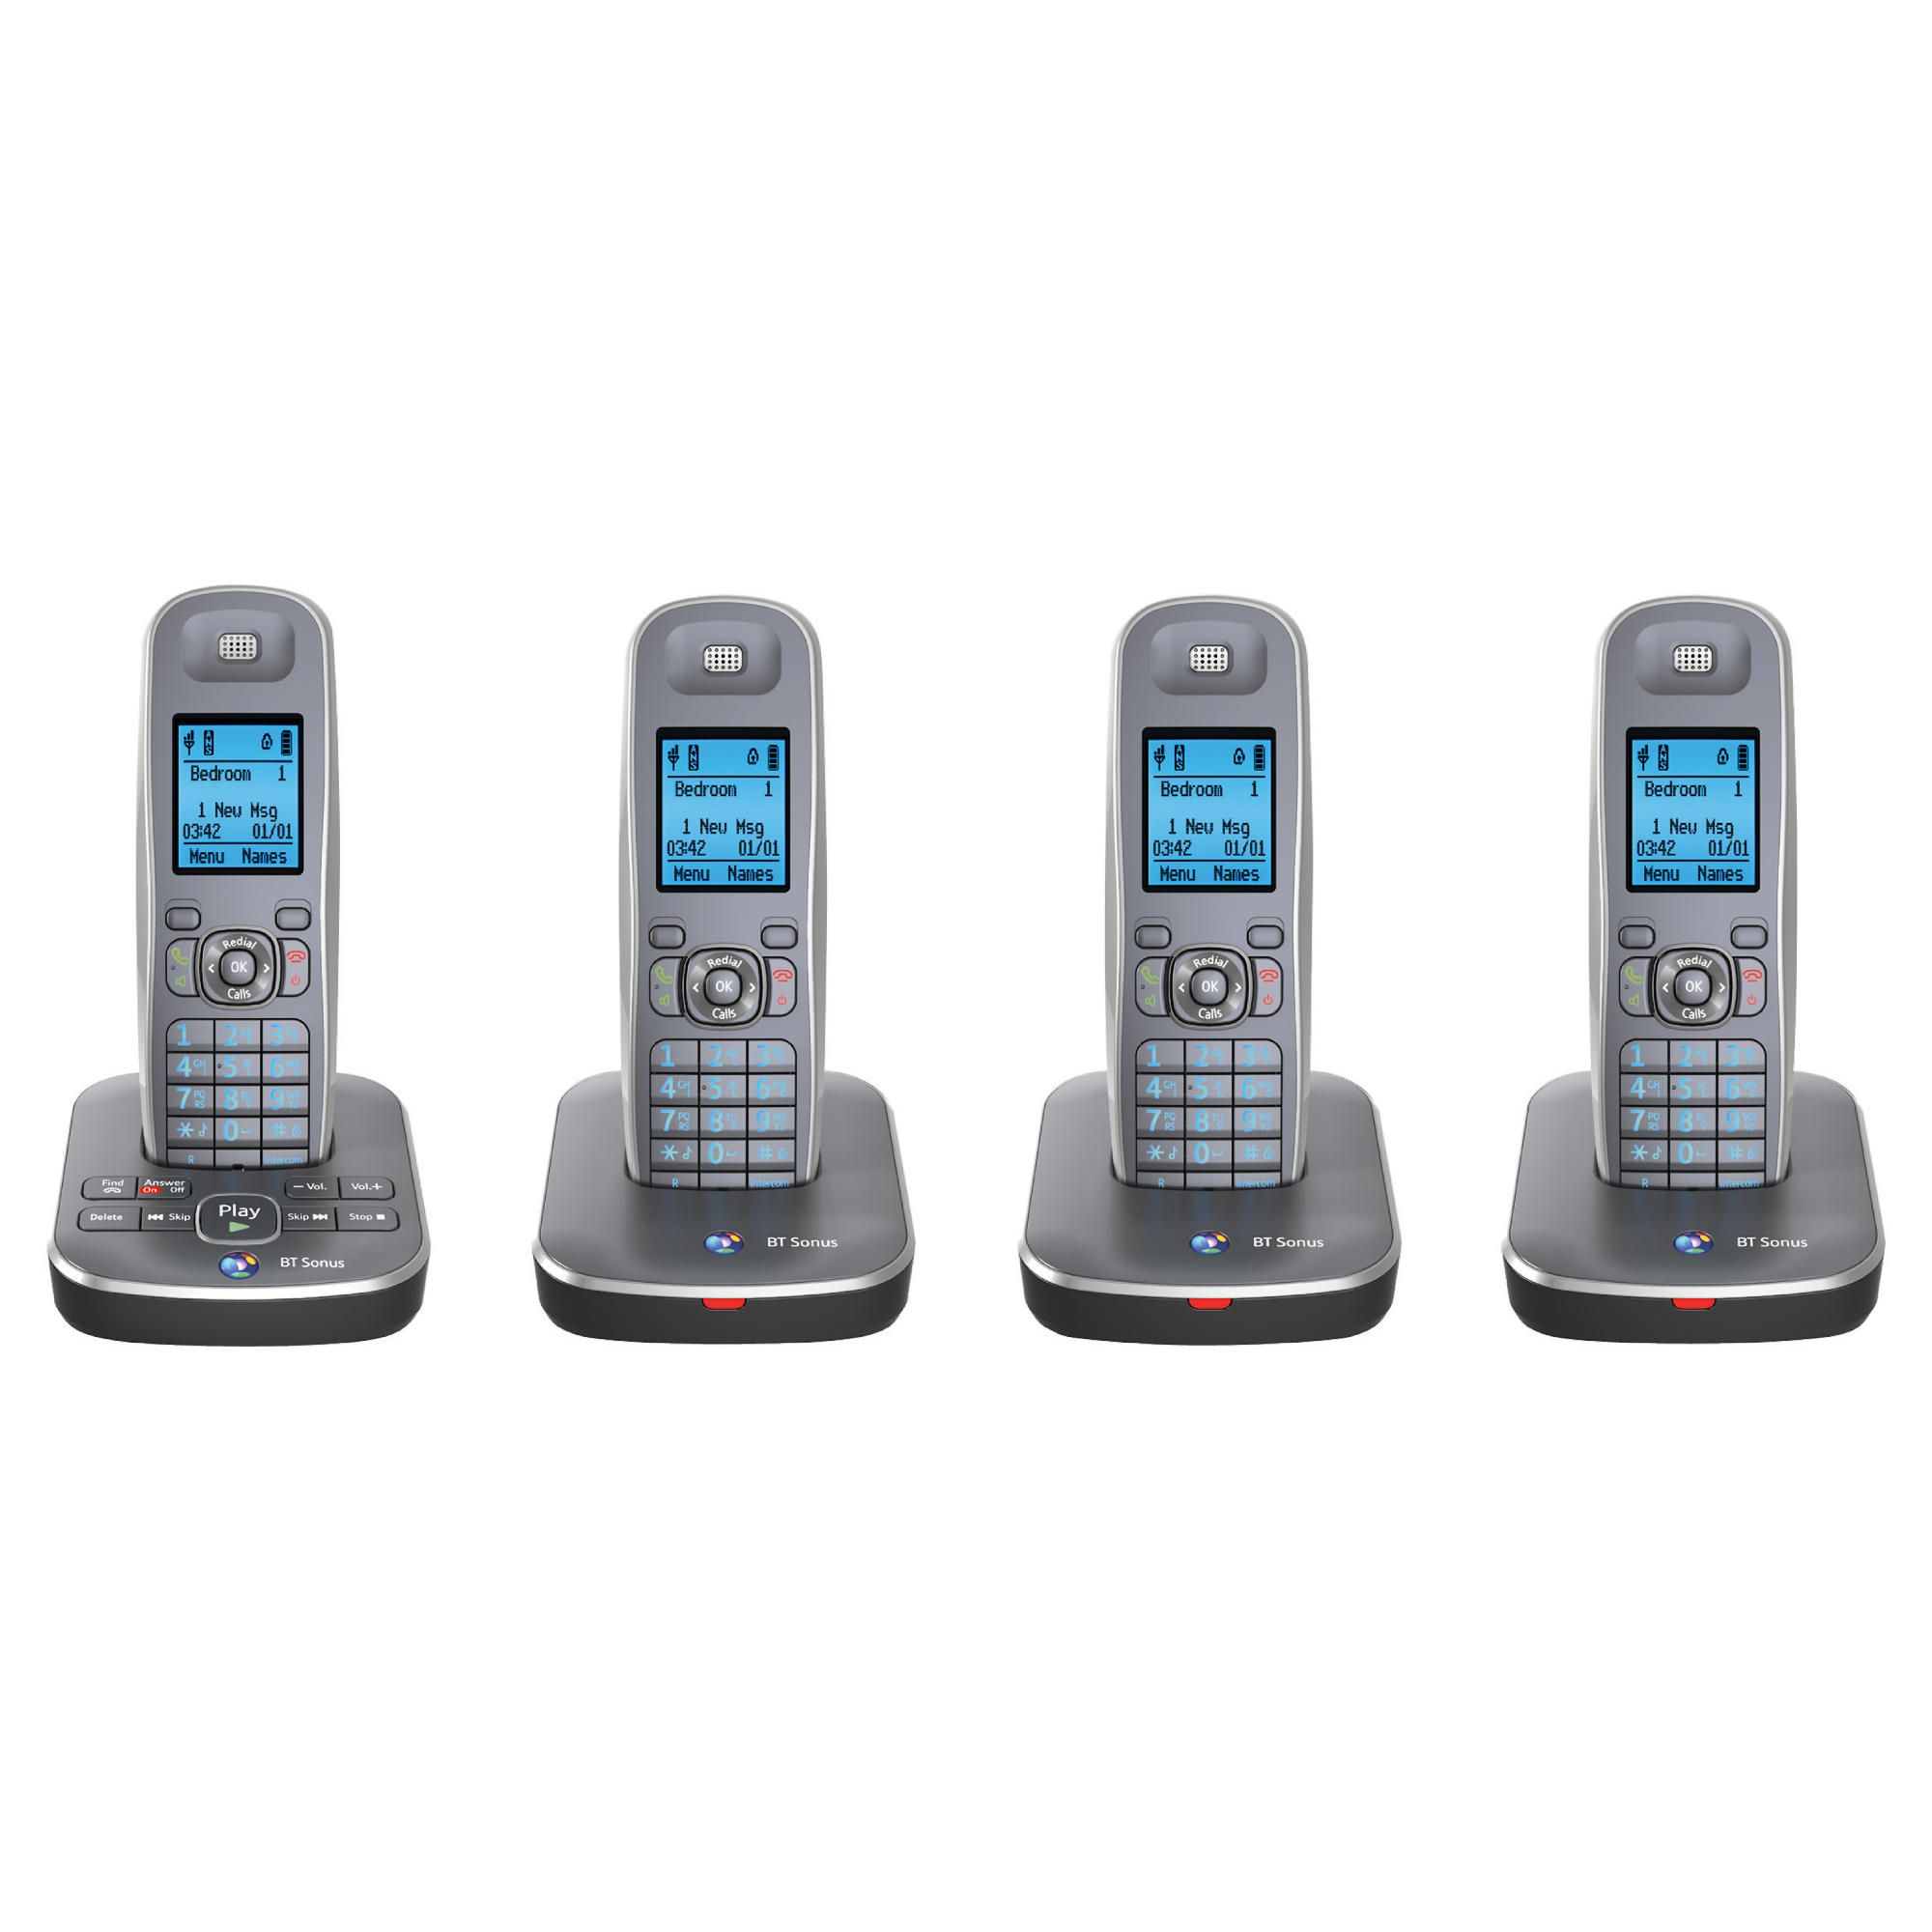 BT Sonus 1500 cordless Telephone – Set of 4